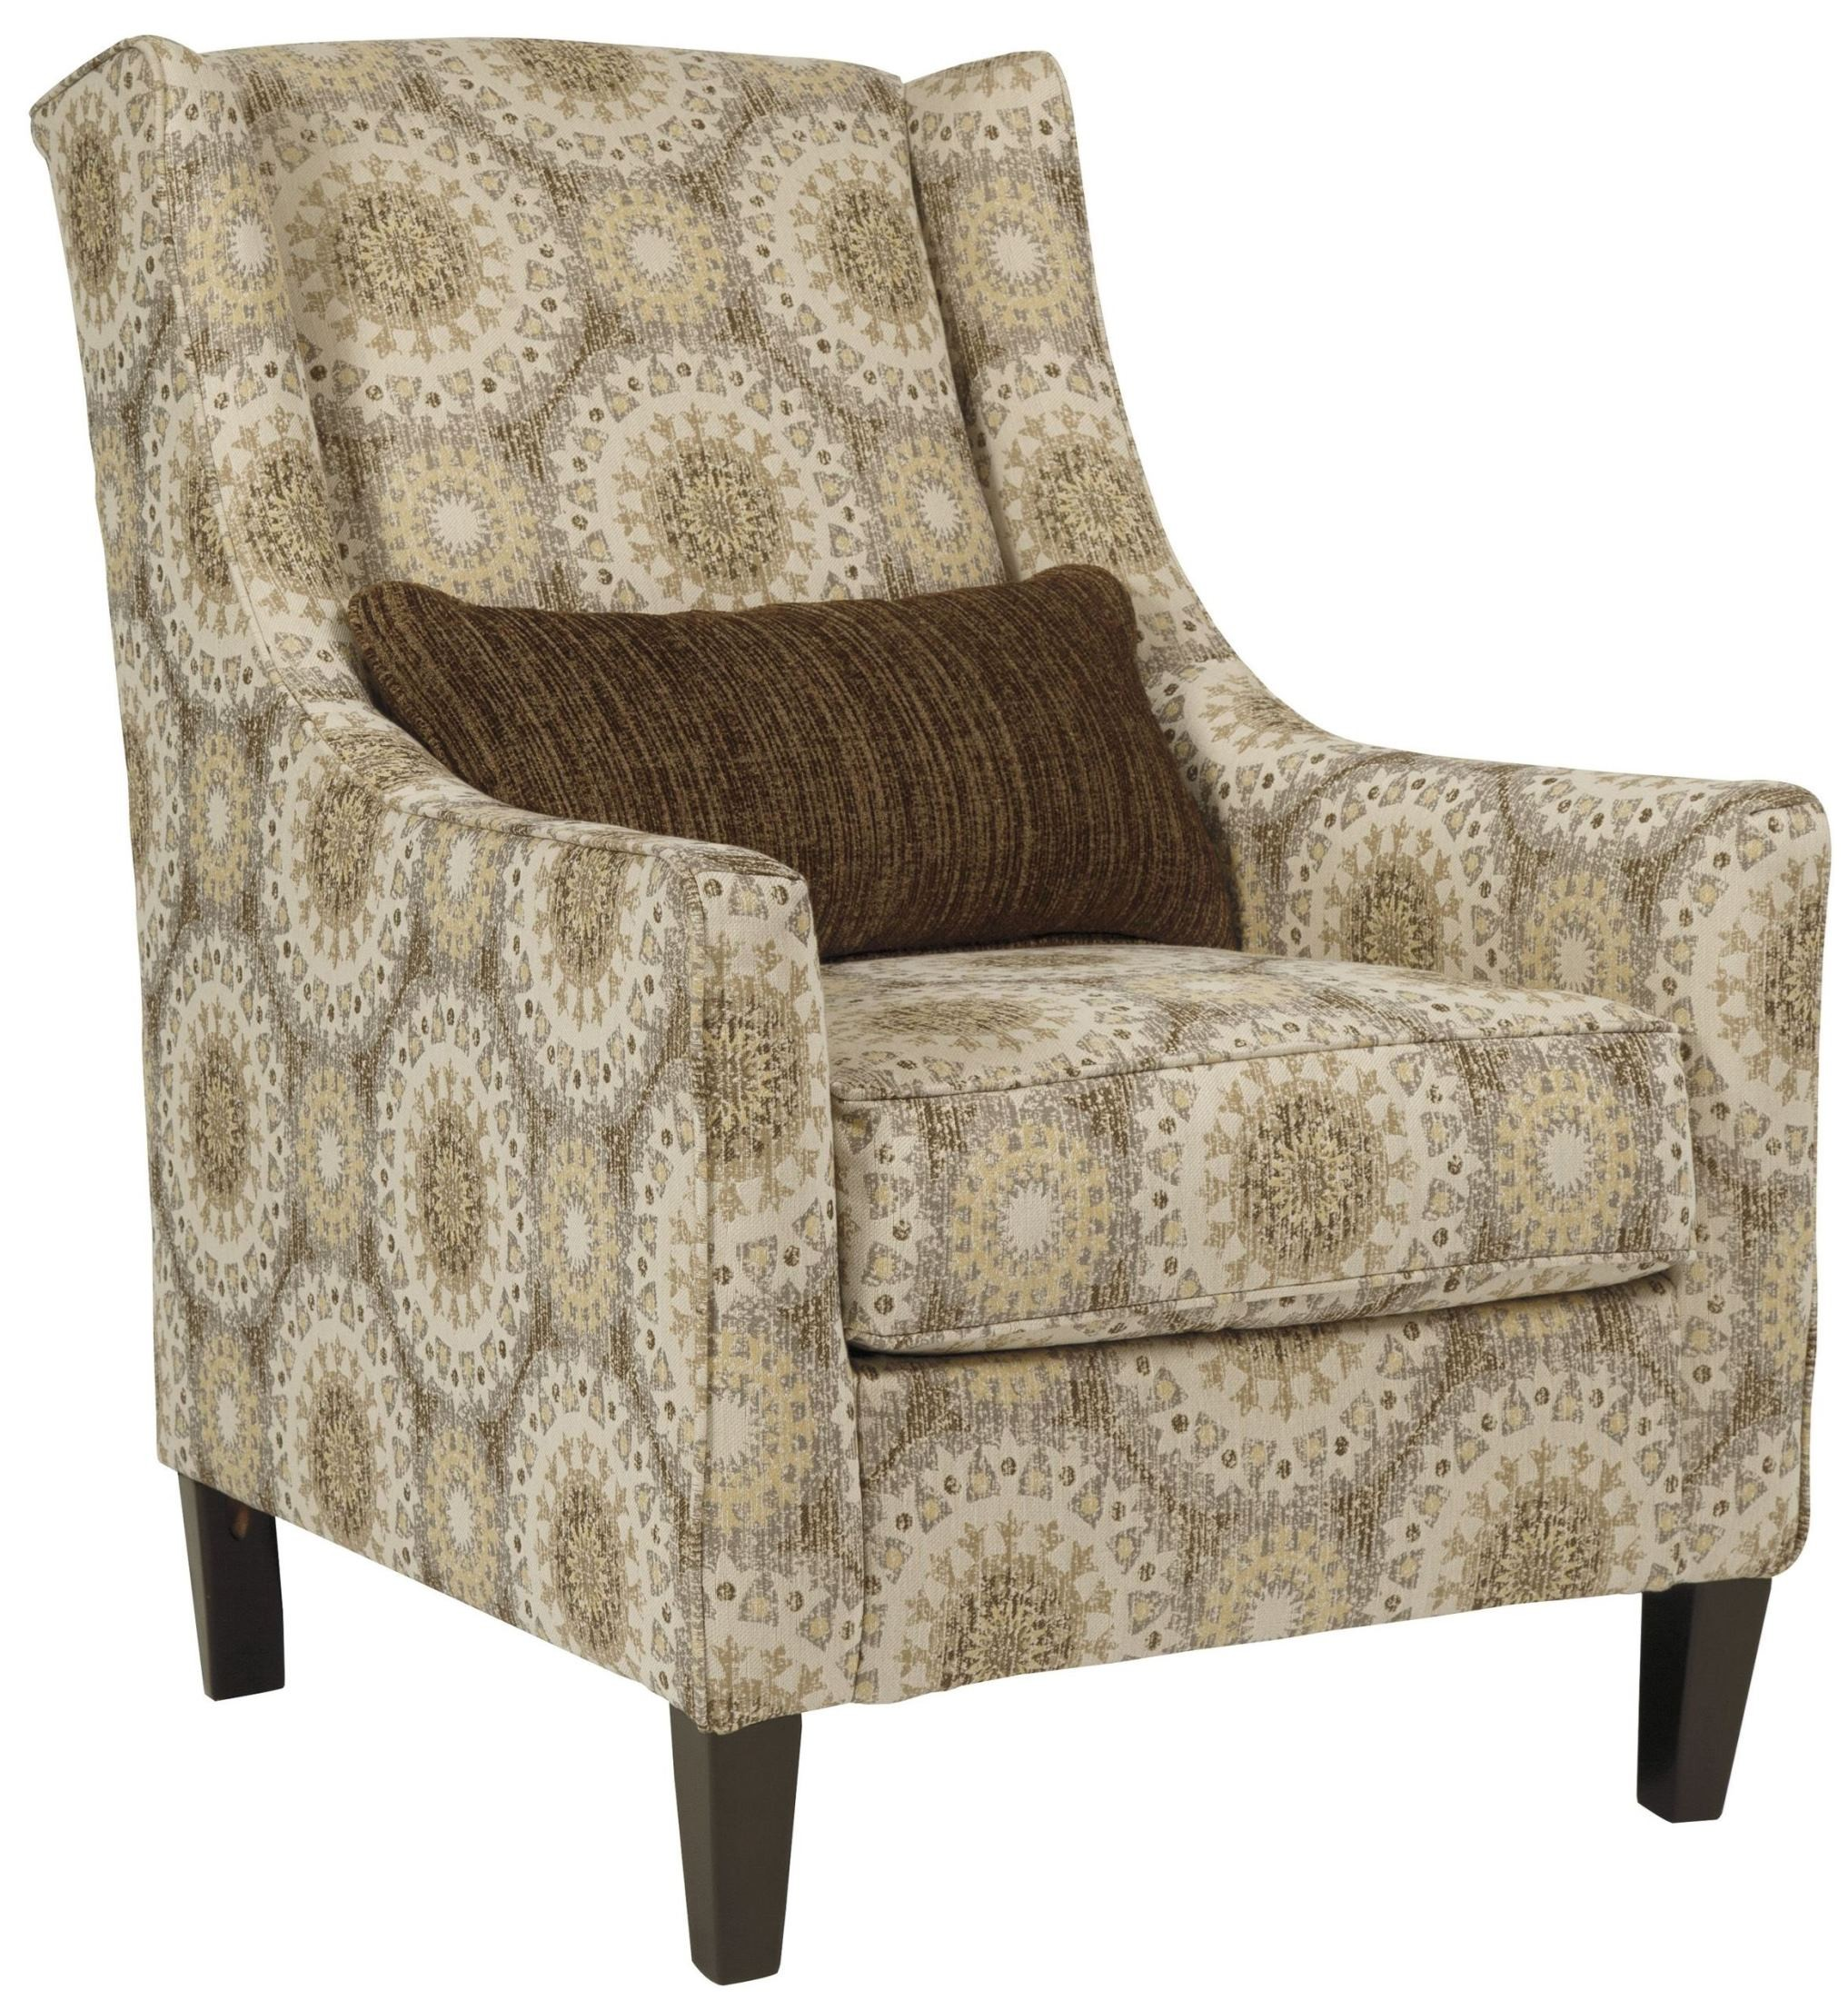 Driftwood Chair Quarry Hill Driftwood Accent Chair 3870121 Ashley